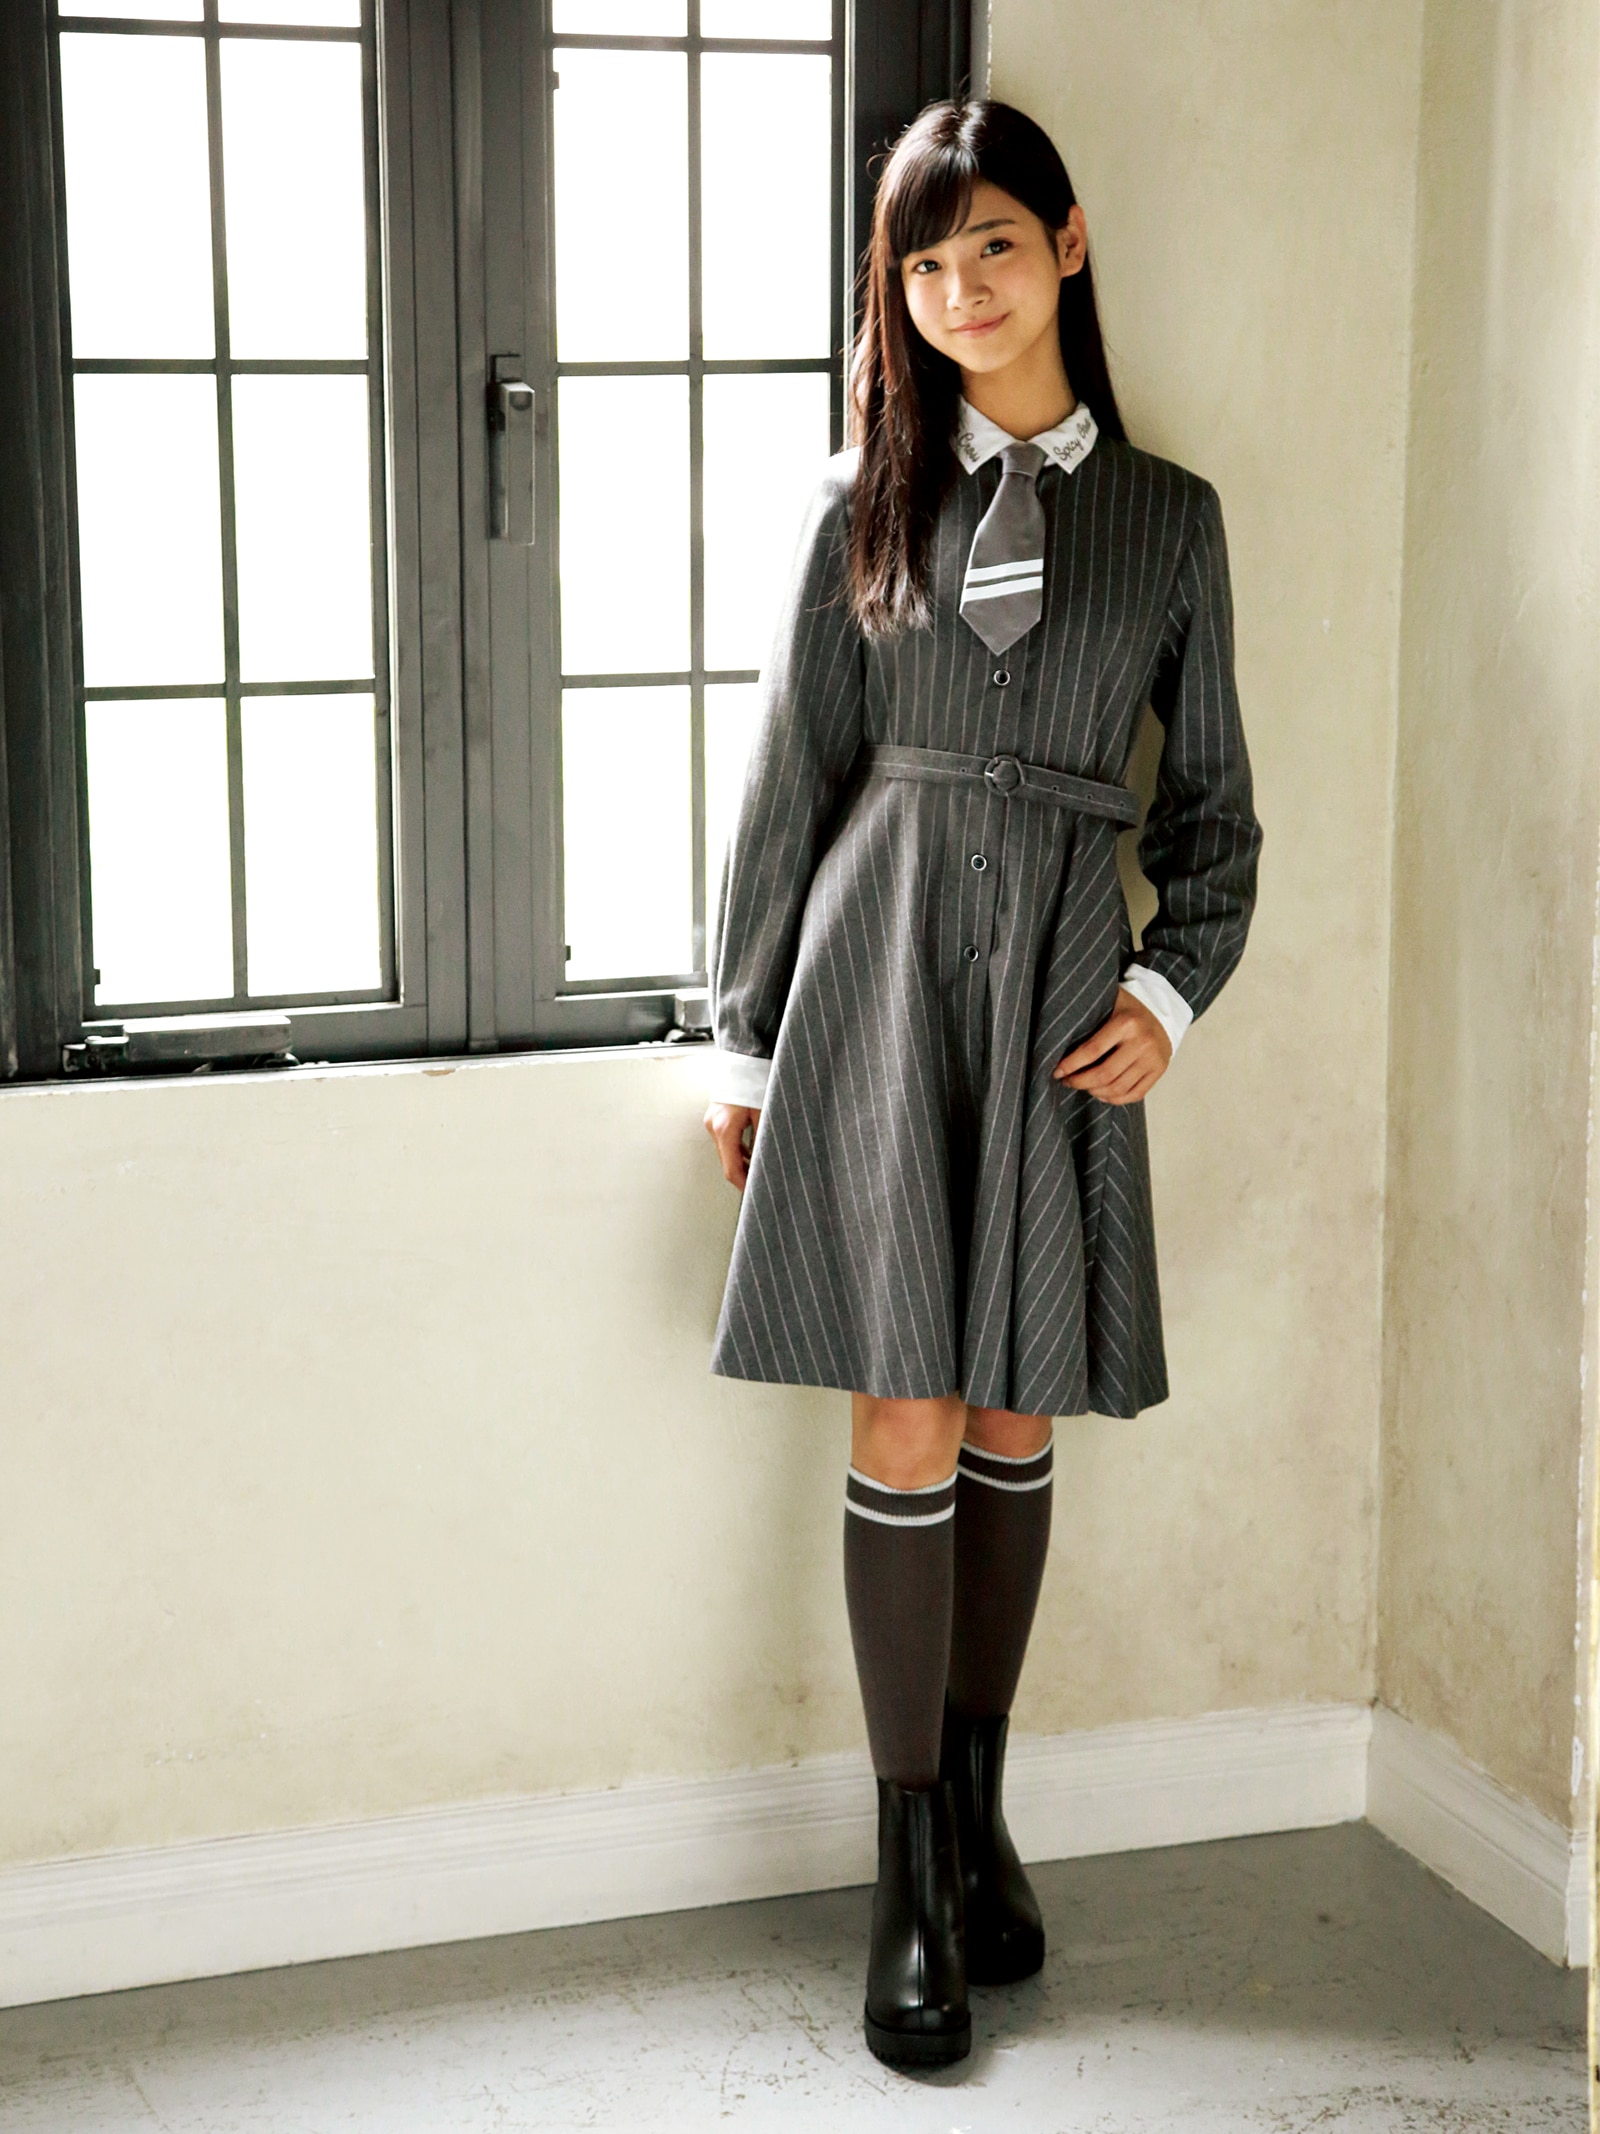 BLUECROSS Girls 2019 Freshers COLLECTION